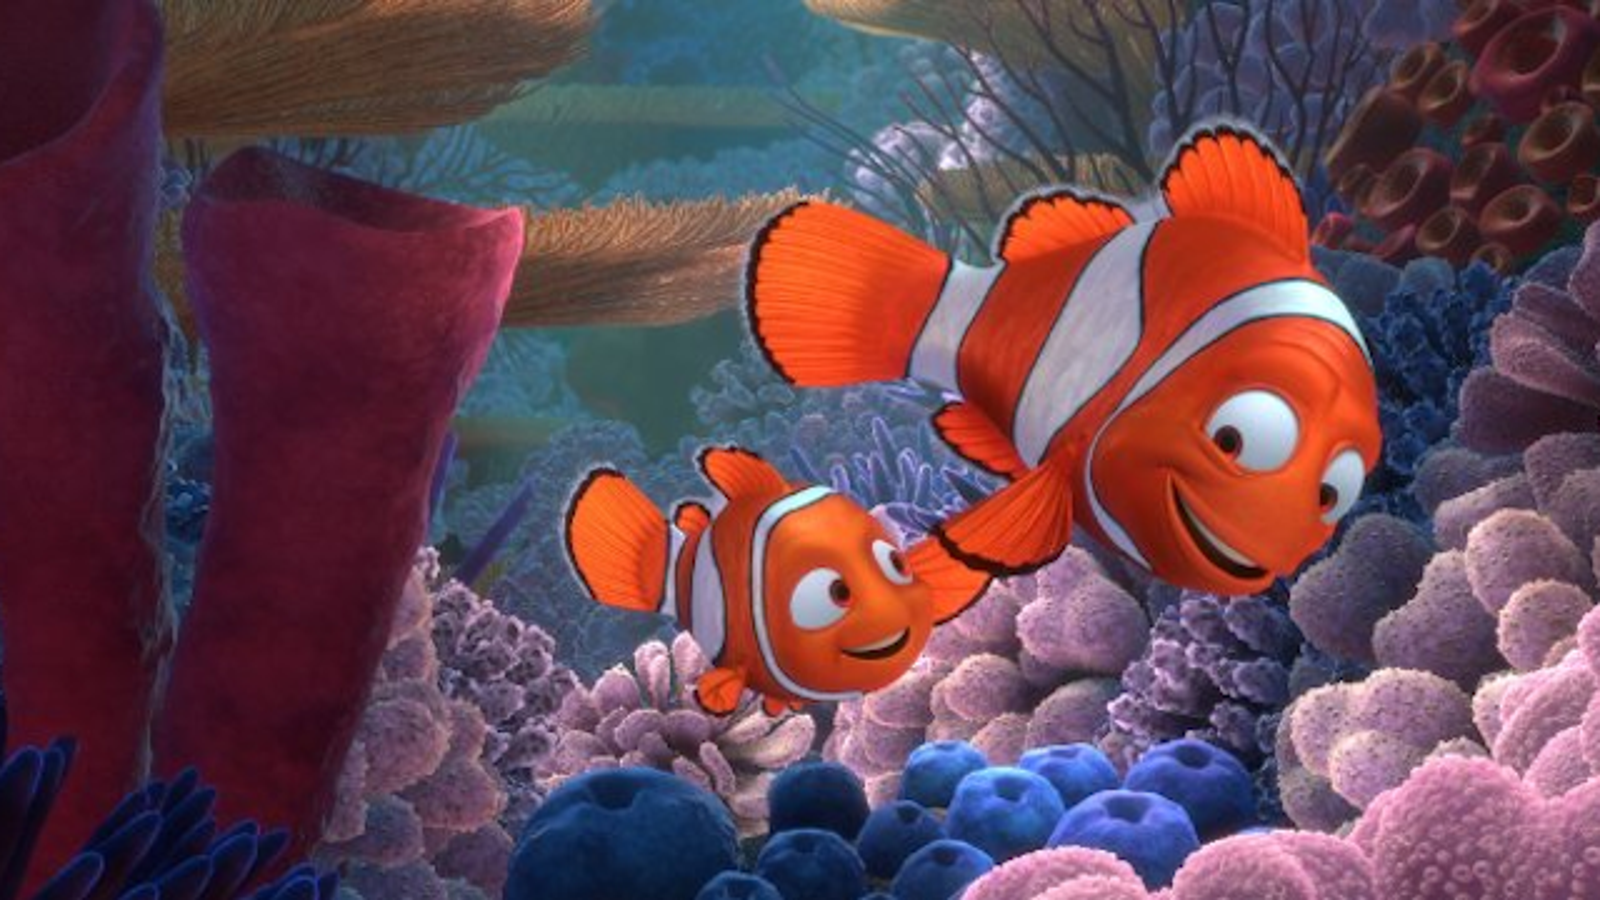 Scientifically Accurate Finding Nemo Would Be Horrifyingly Incestual